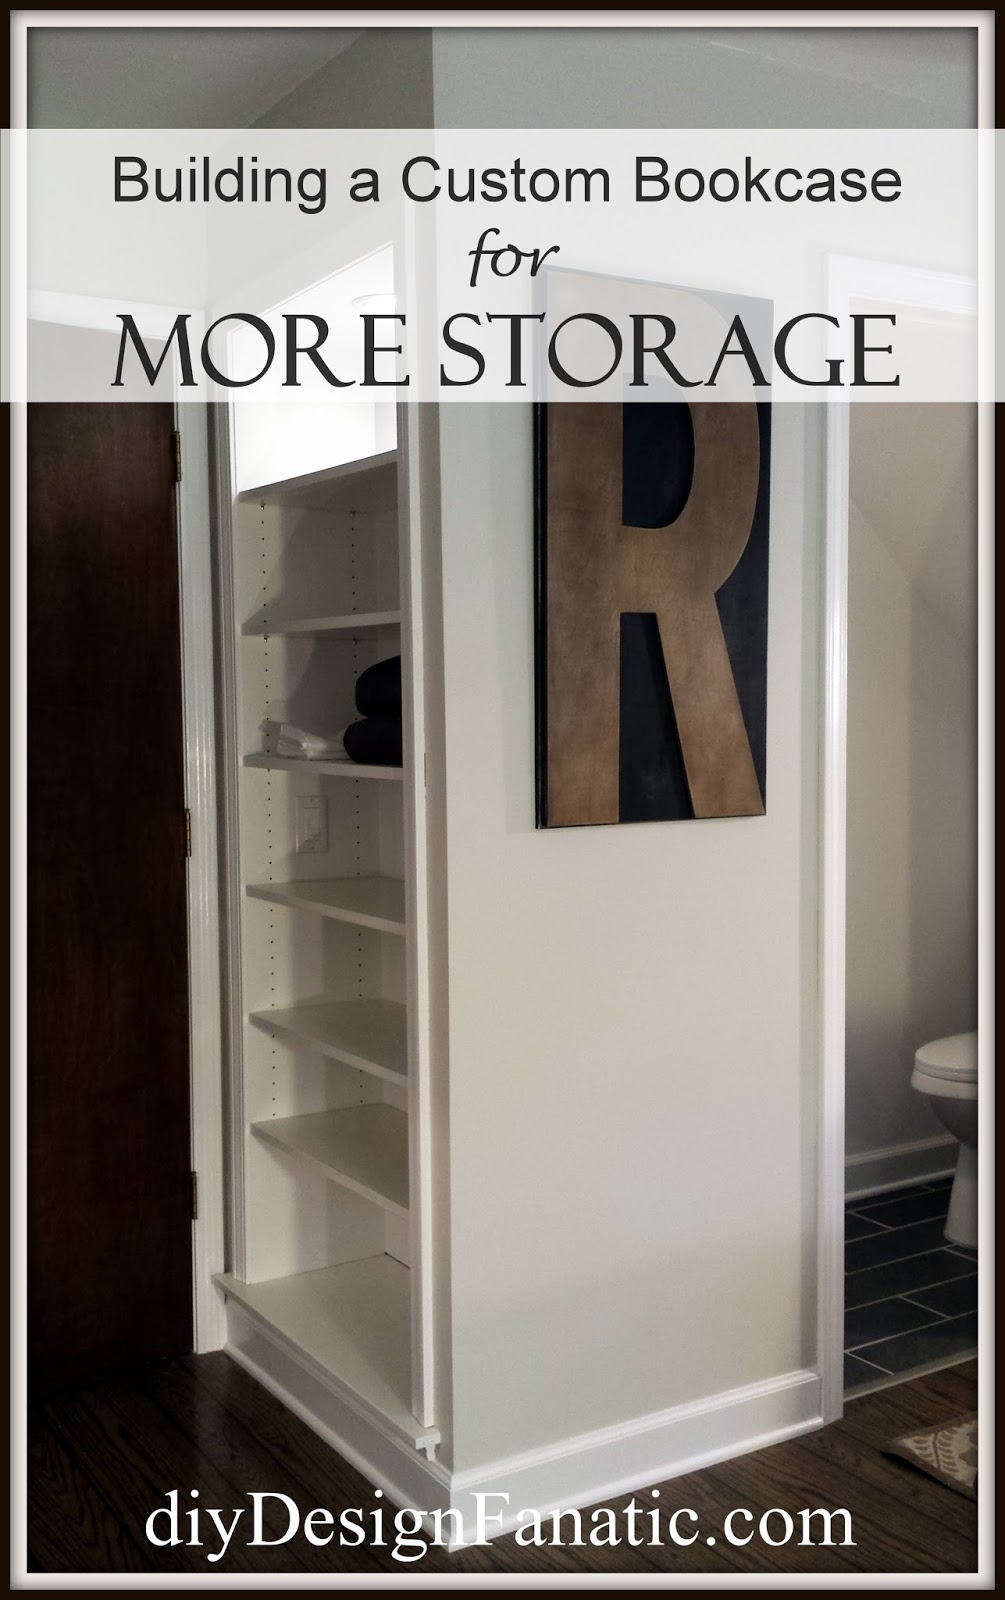 Mountain cottage, mountain cottage bedroom, Storage, Storage Shelves, bookcases, built in bookcase,cottage, cottage style, farmhouse, farmhouse style, diyDesignFanatic.com